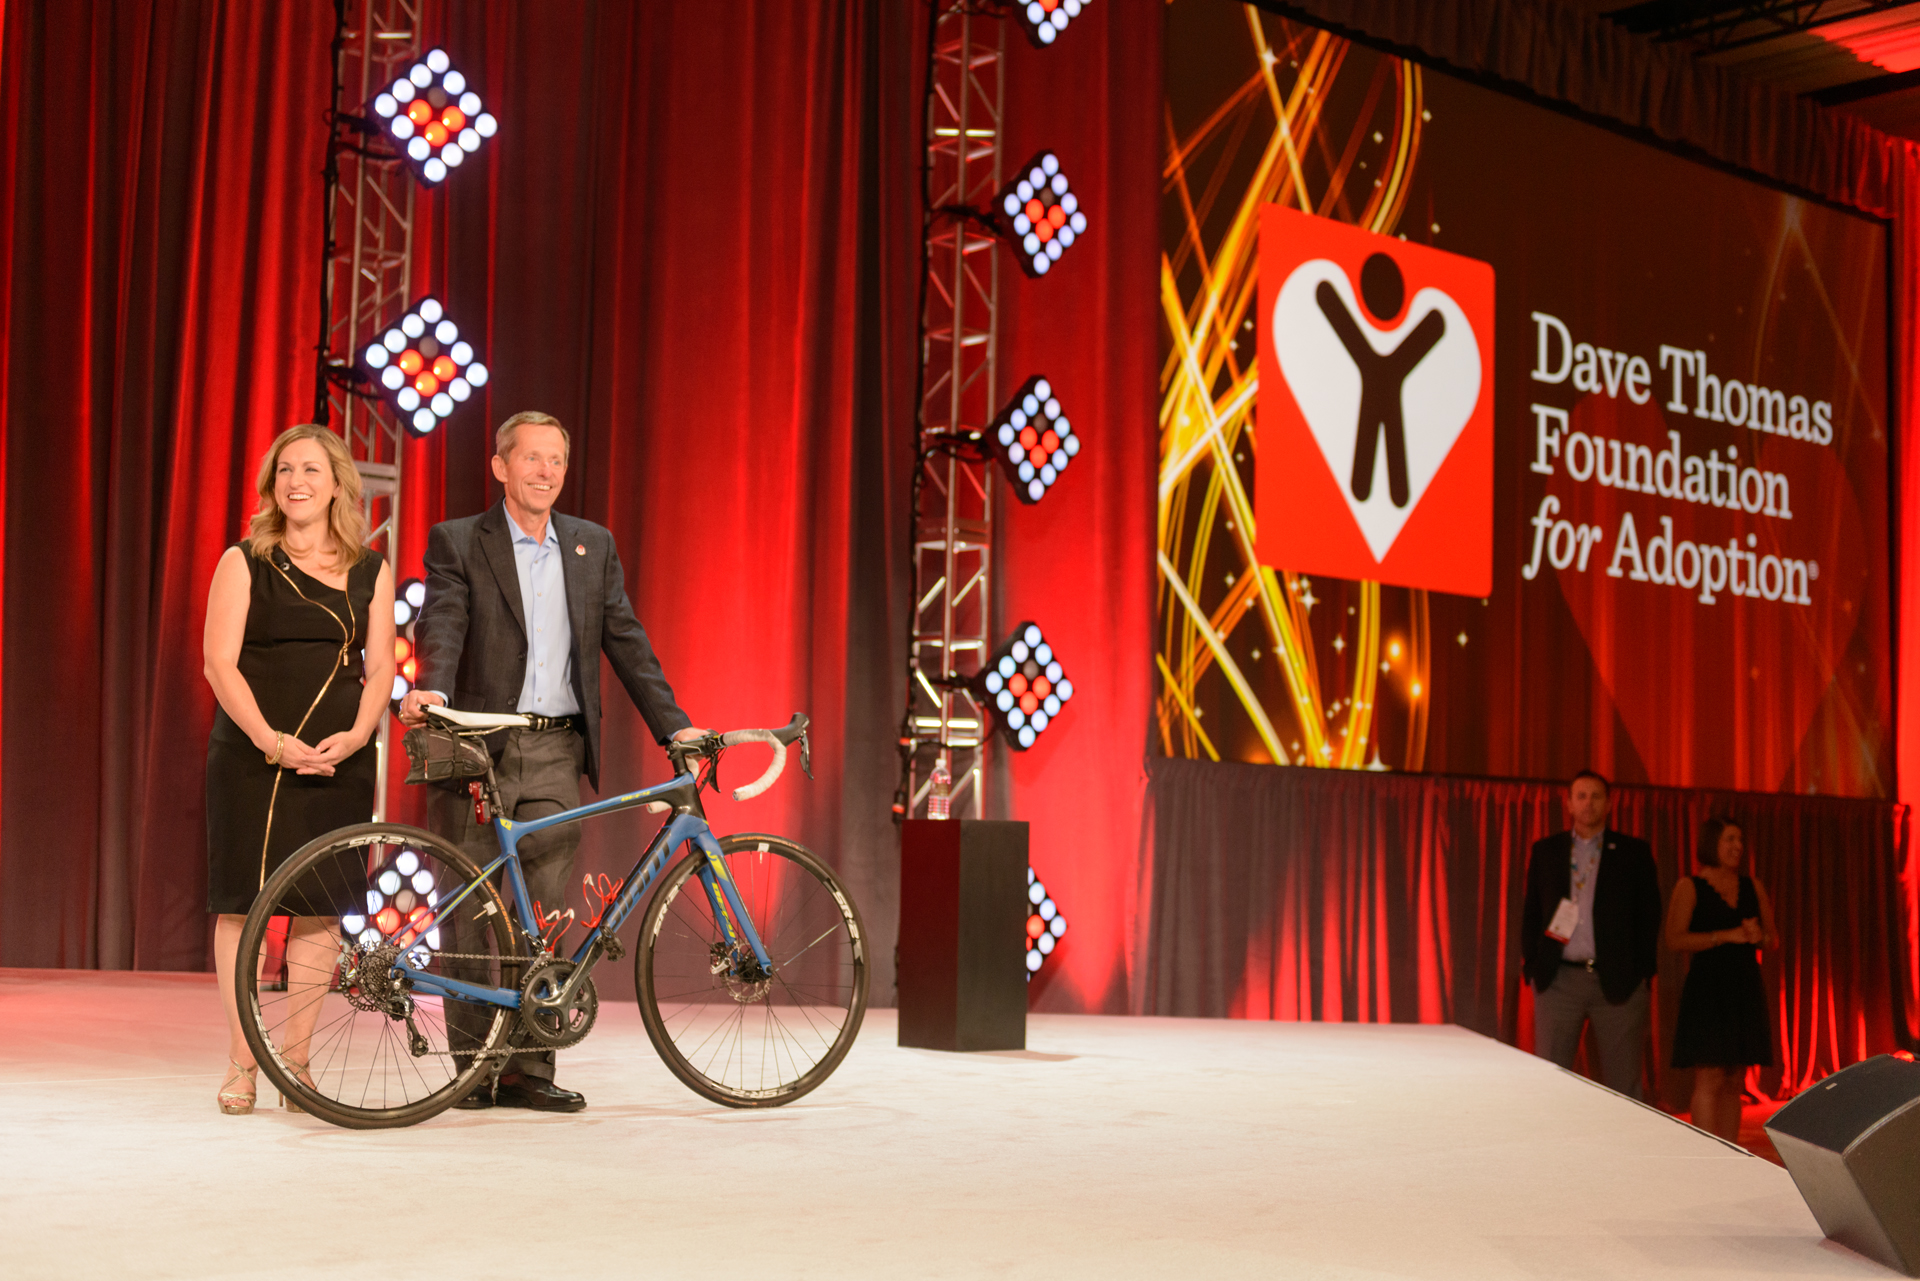 I'm on stage with ed Anderson and his bike.